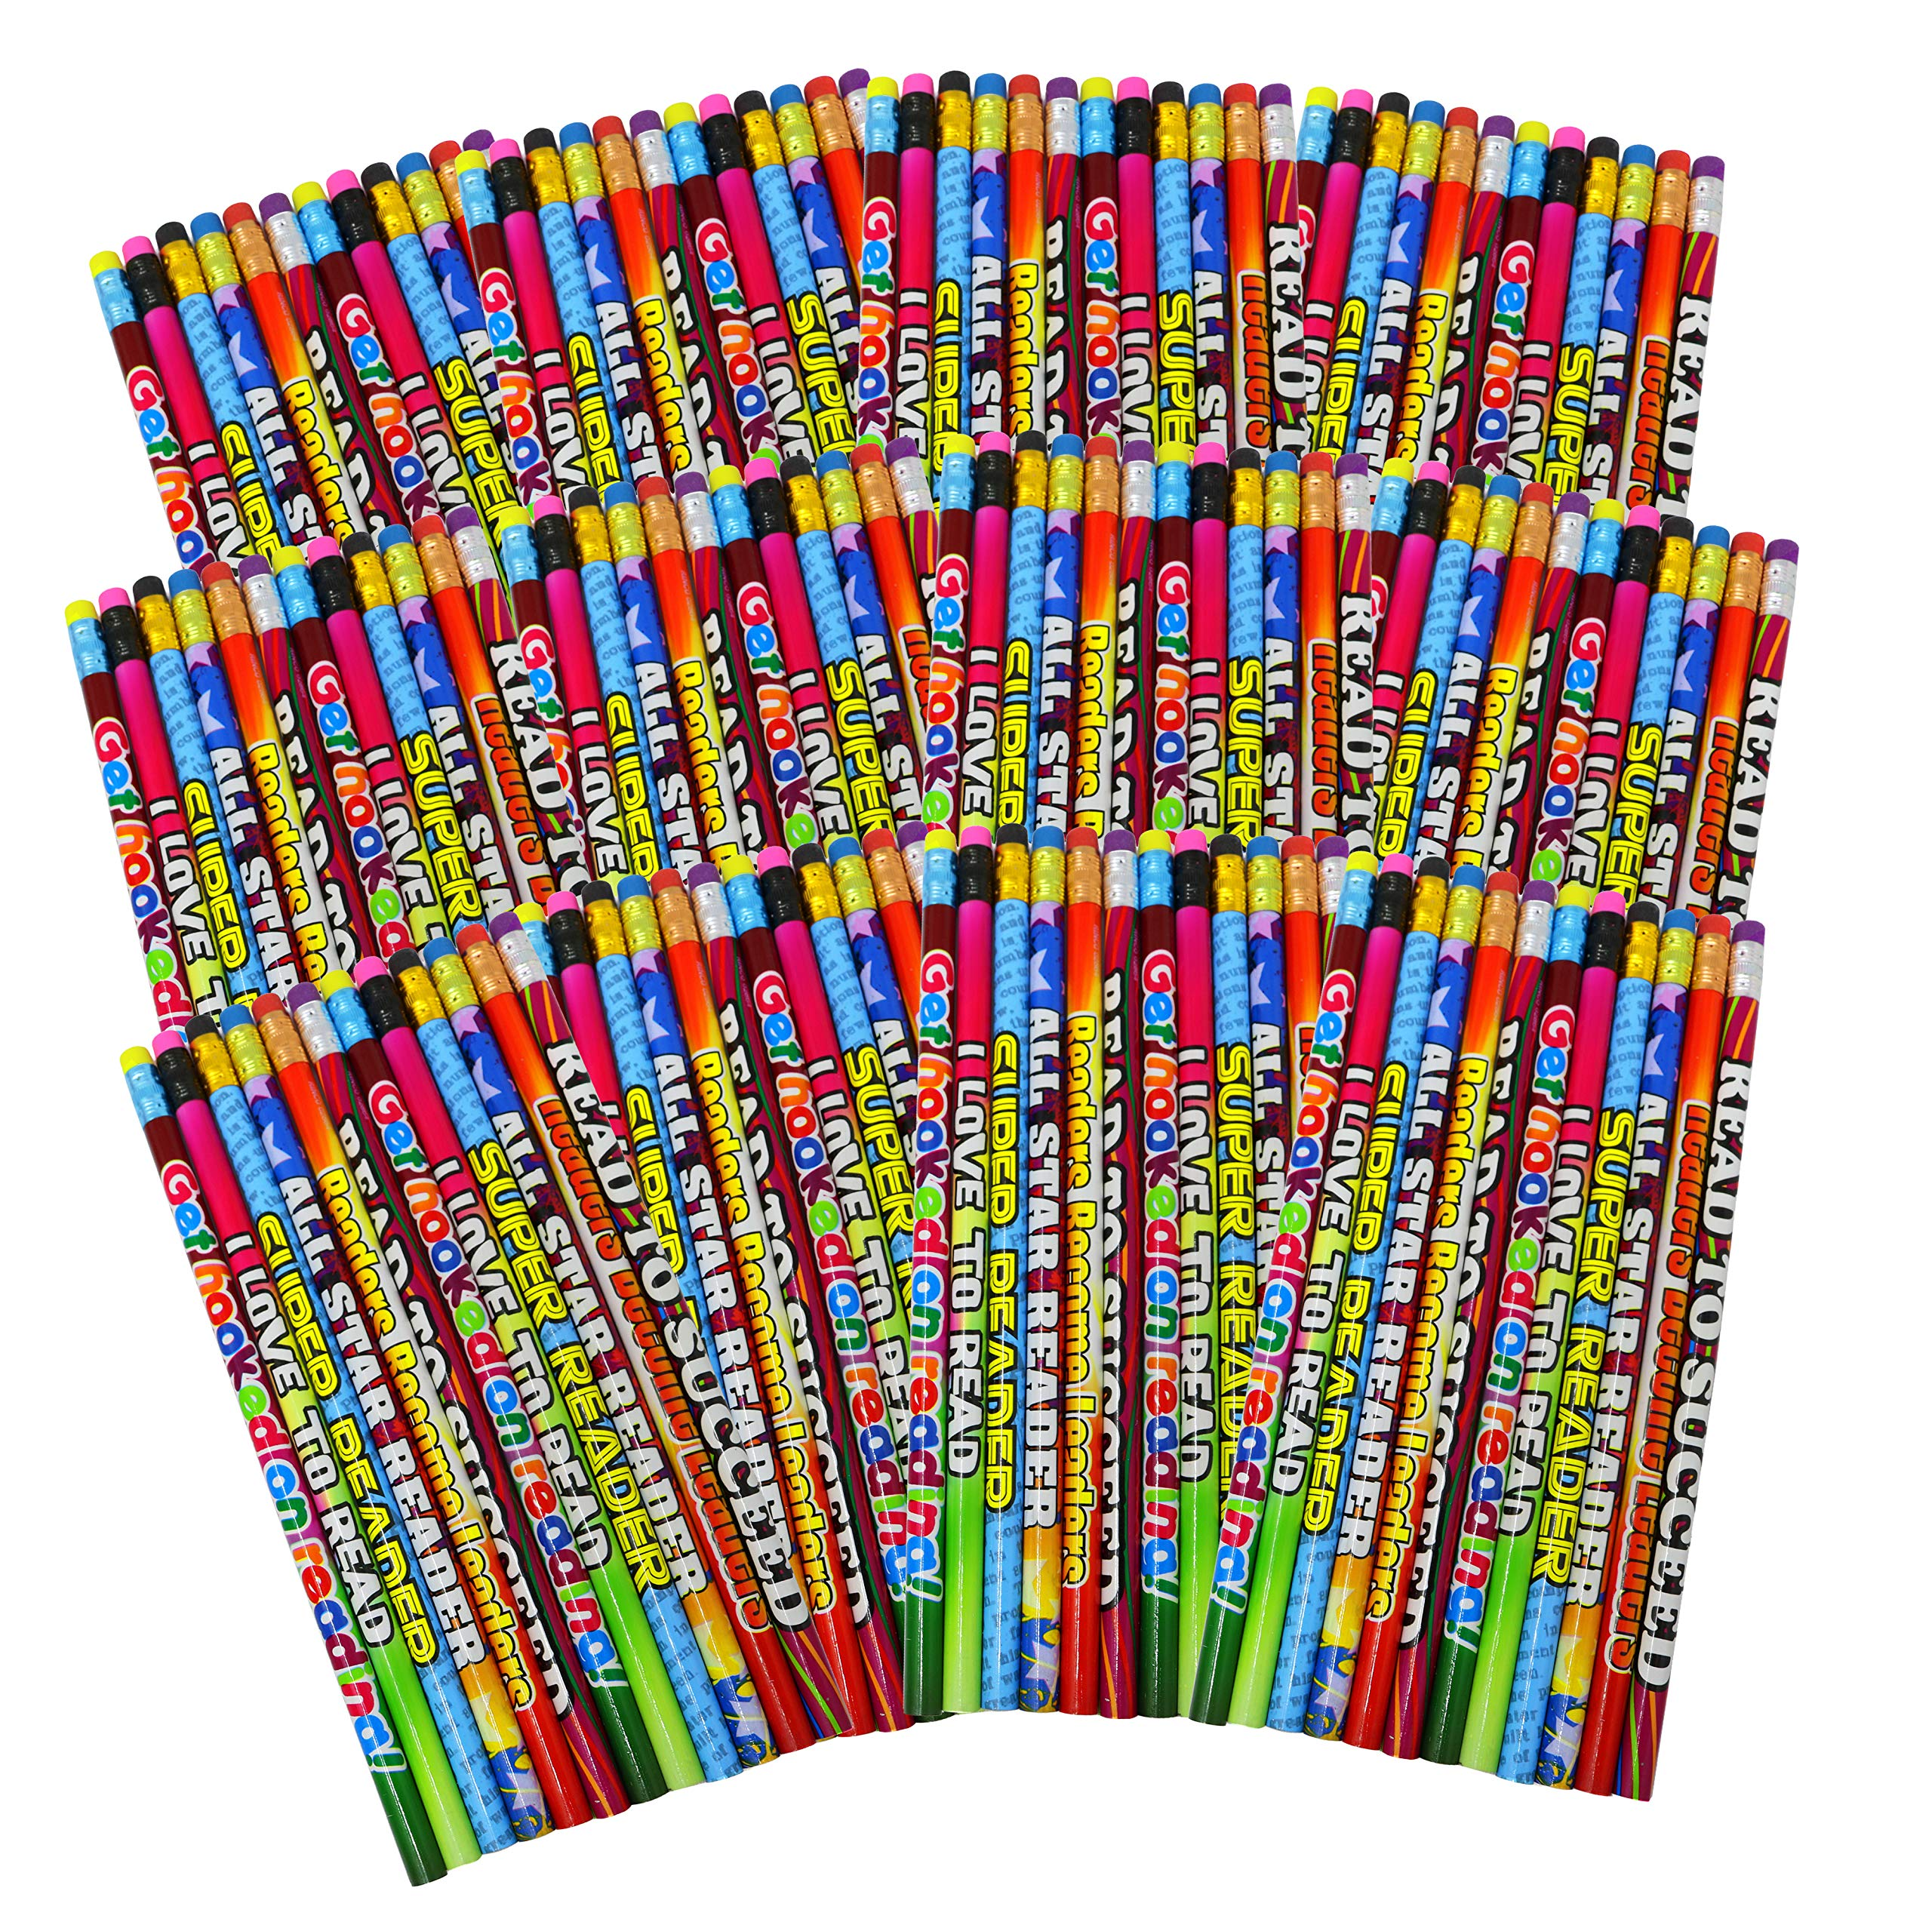 SN Incorp. Motivational Pencils for Students Readers Pencil Assortment for Classroom Rewards I Love to Read Pencil Party Favors - Bulk School Supplies Pencils 144 by SN Incorp.